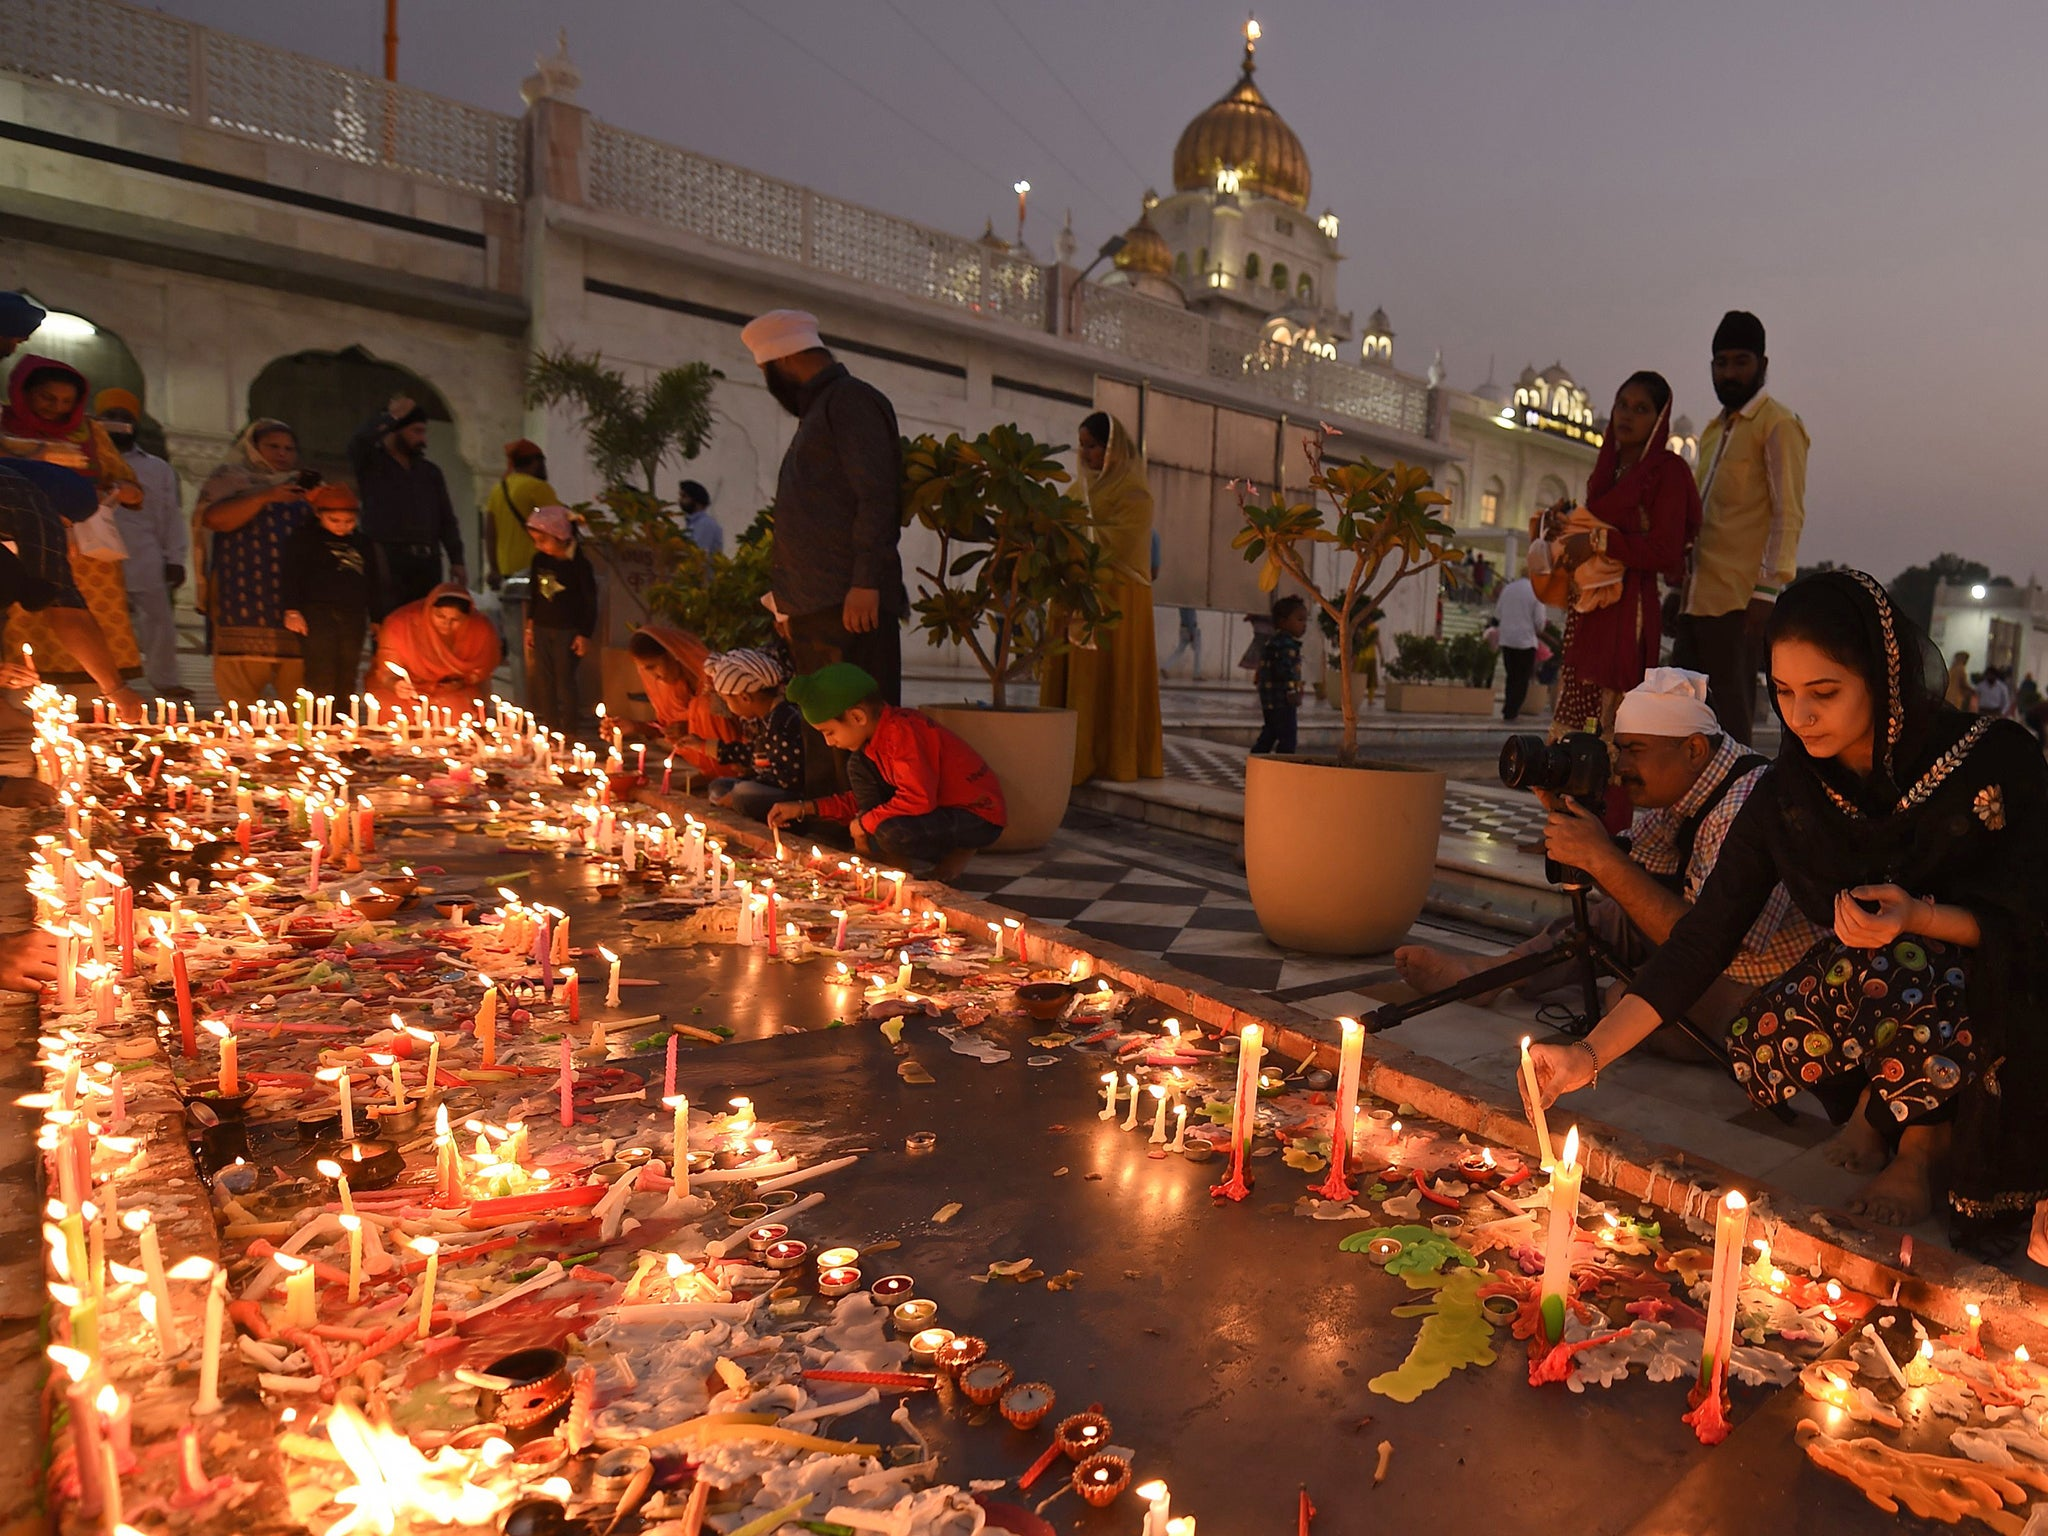 Diwali 2018: When is it and how is it celebrated? | The